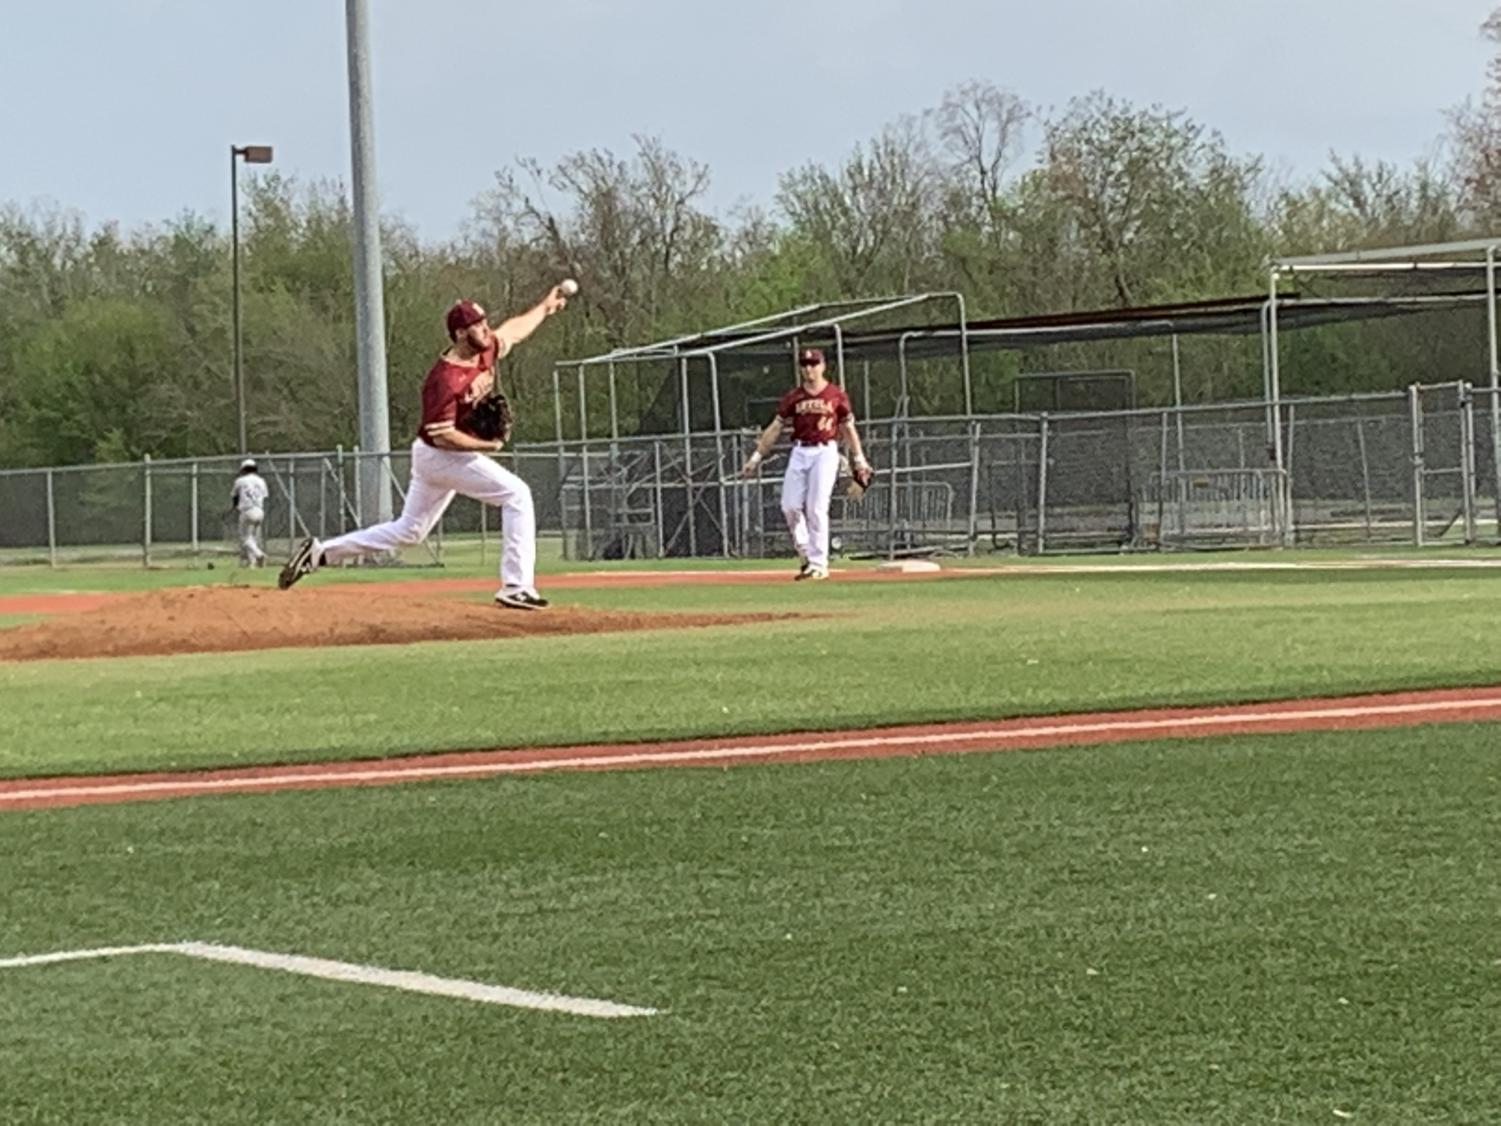 A Loyola pitcher on the mound for the Rust College series at Segentte Field. Photo credit: Andrew Wellmann